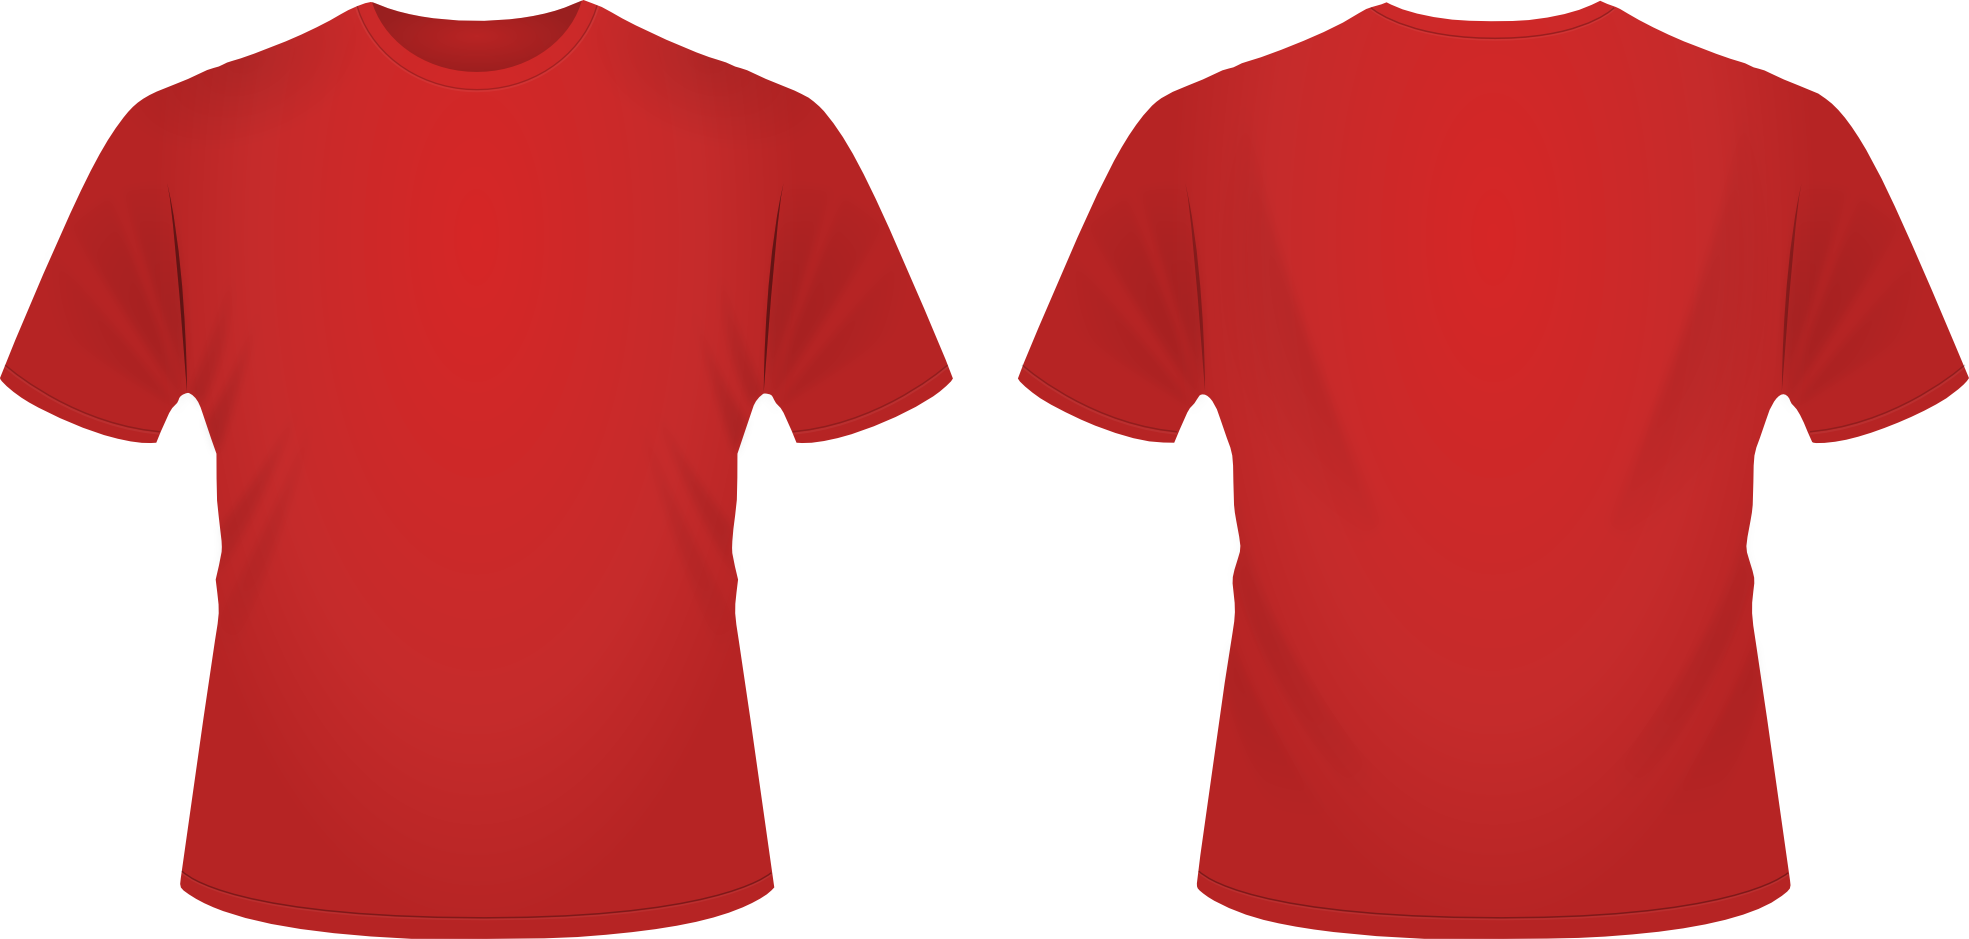 Free Shirt Png, Download Free Clip Art, Free Clip Art on.